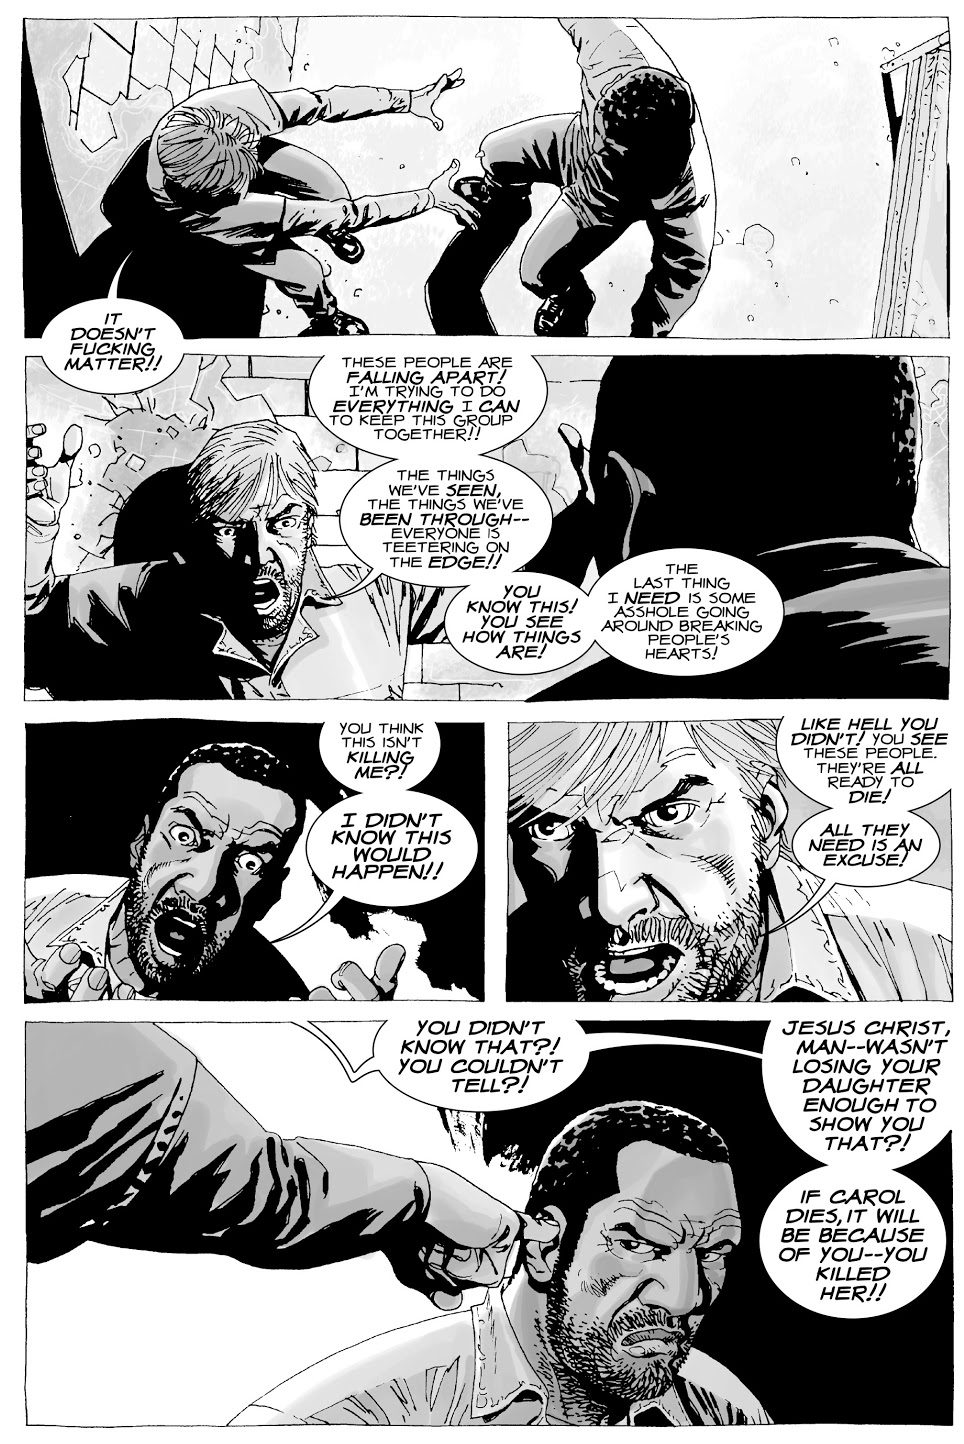 Tyreese Punches Rick Grimes (The Walking Dead)